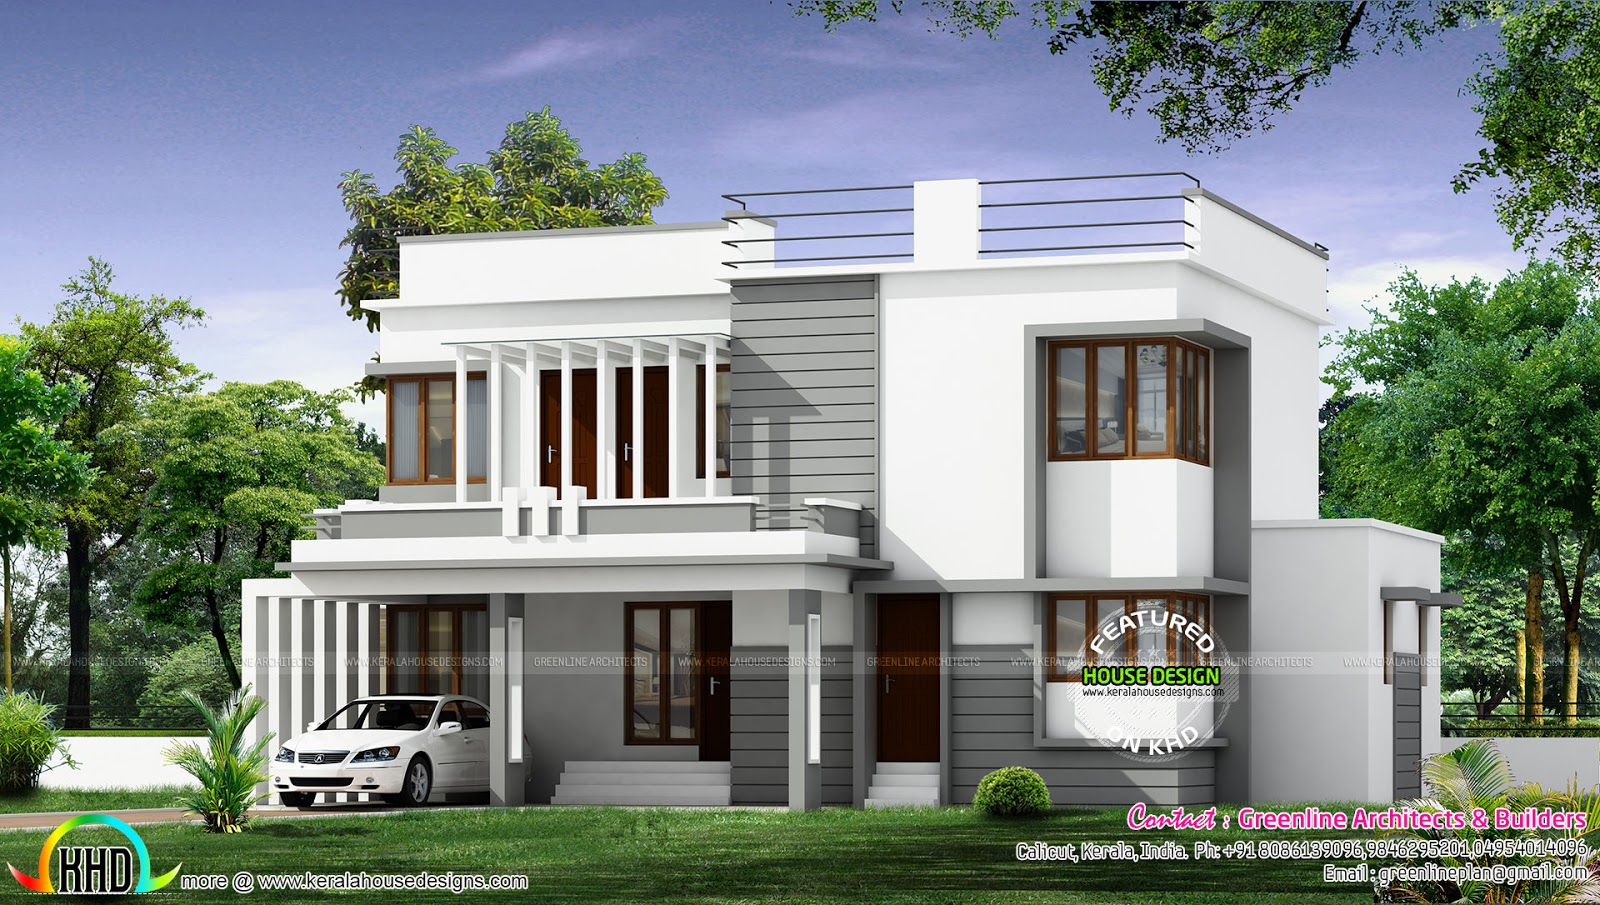 New modern house architecture kerala home design and for Latest architectural house designs